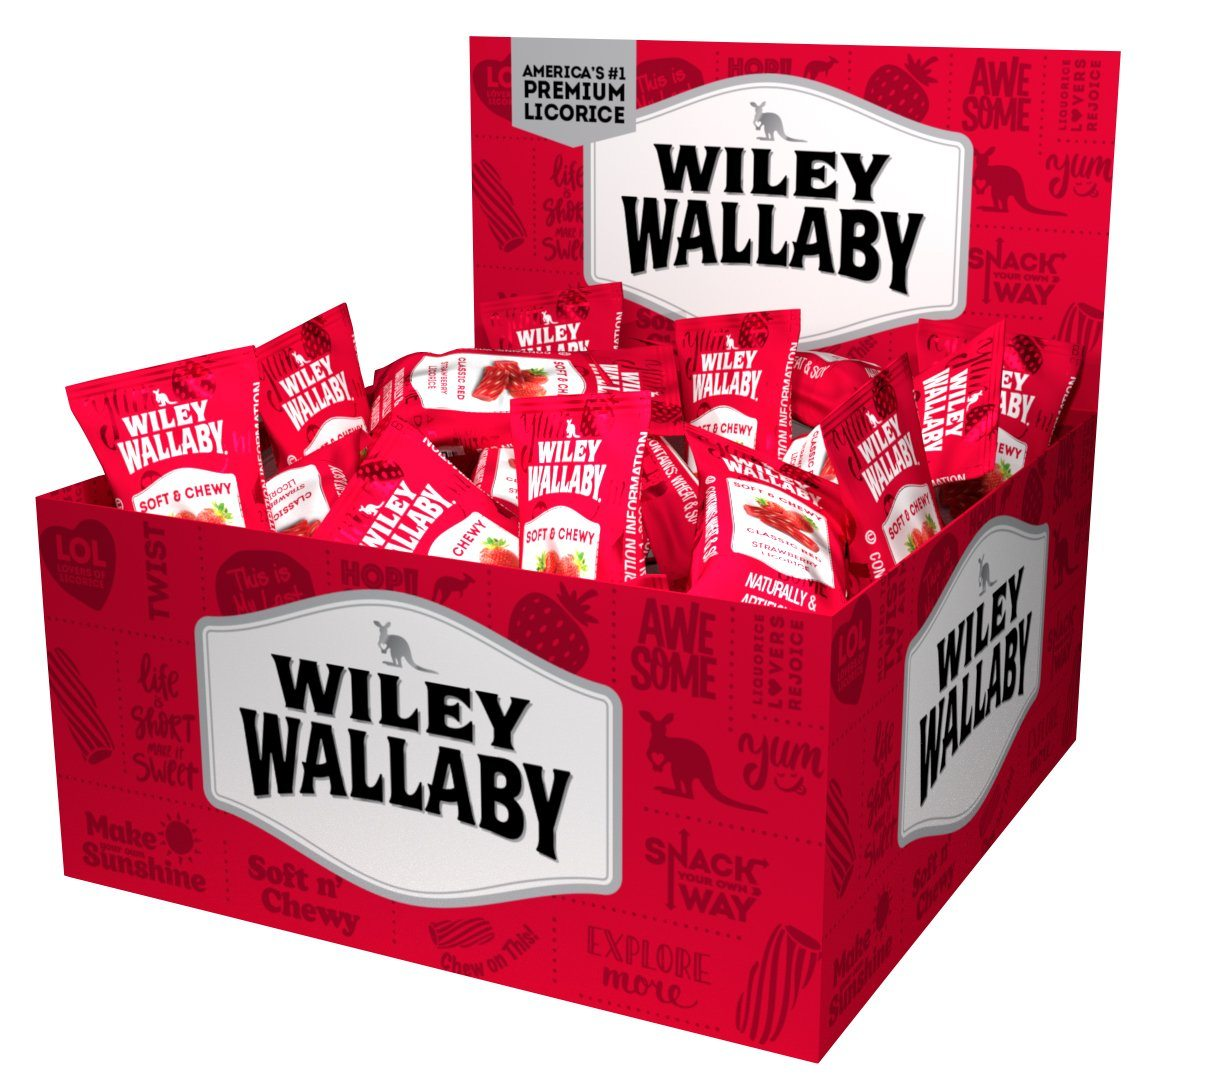 Wiley Wallaby Licorice Wiley Wallaby Original Red 0.28 Oz-50 Count